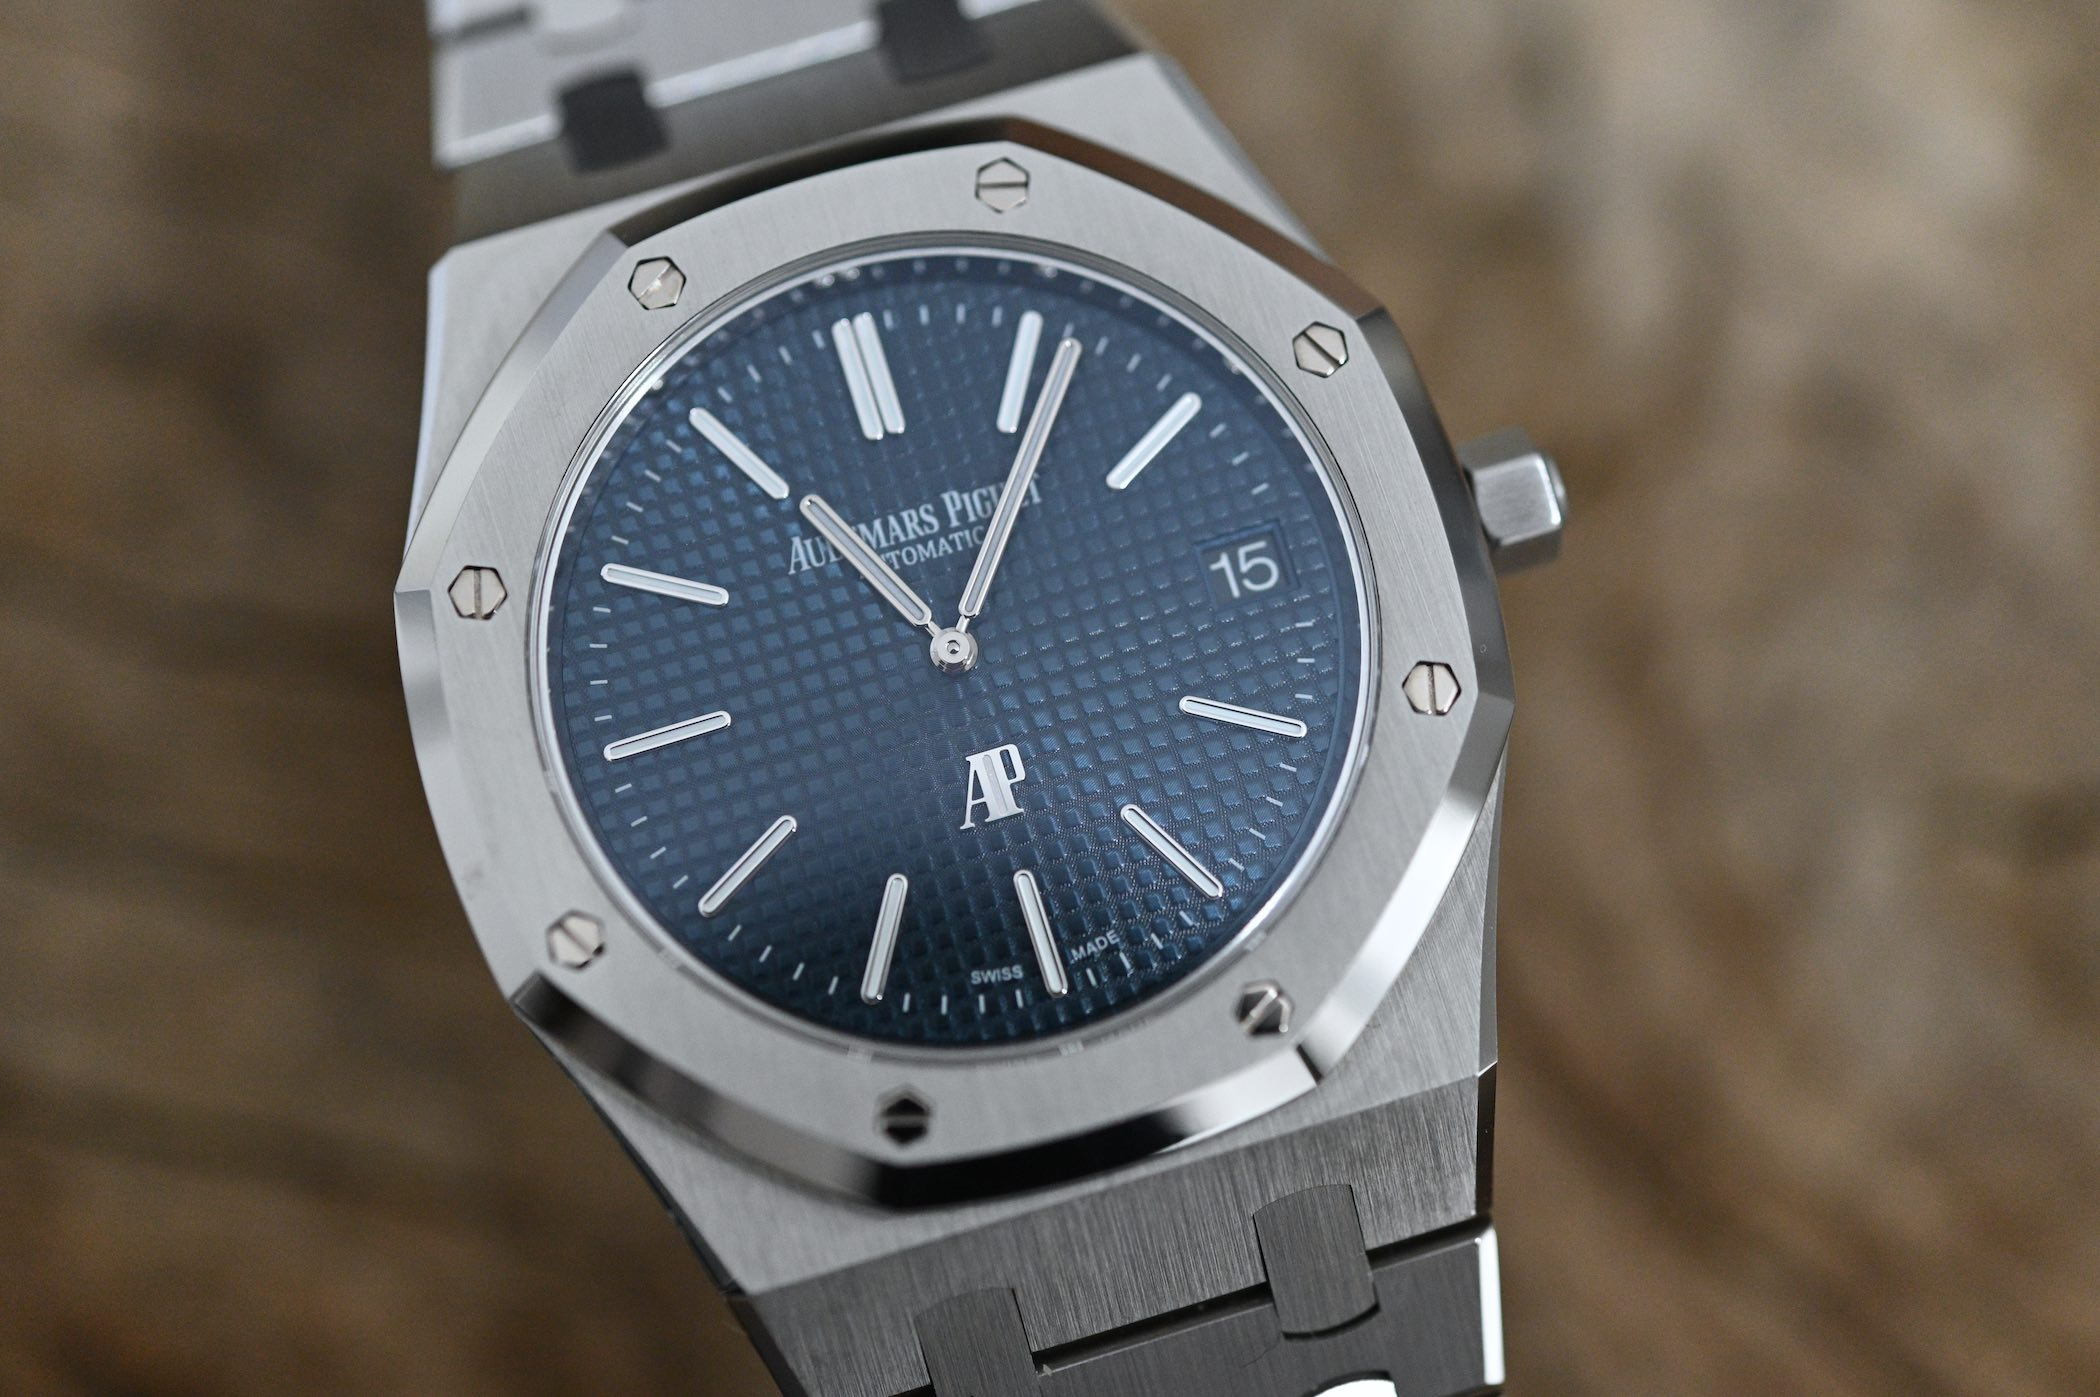 Audemars Piguet Royal Oak Jumbo Extra-Thin 15202ST.OO.1240ST.01